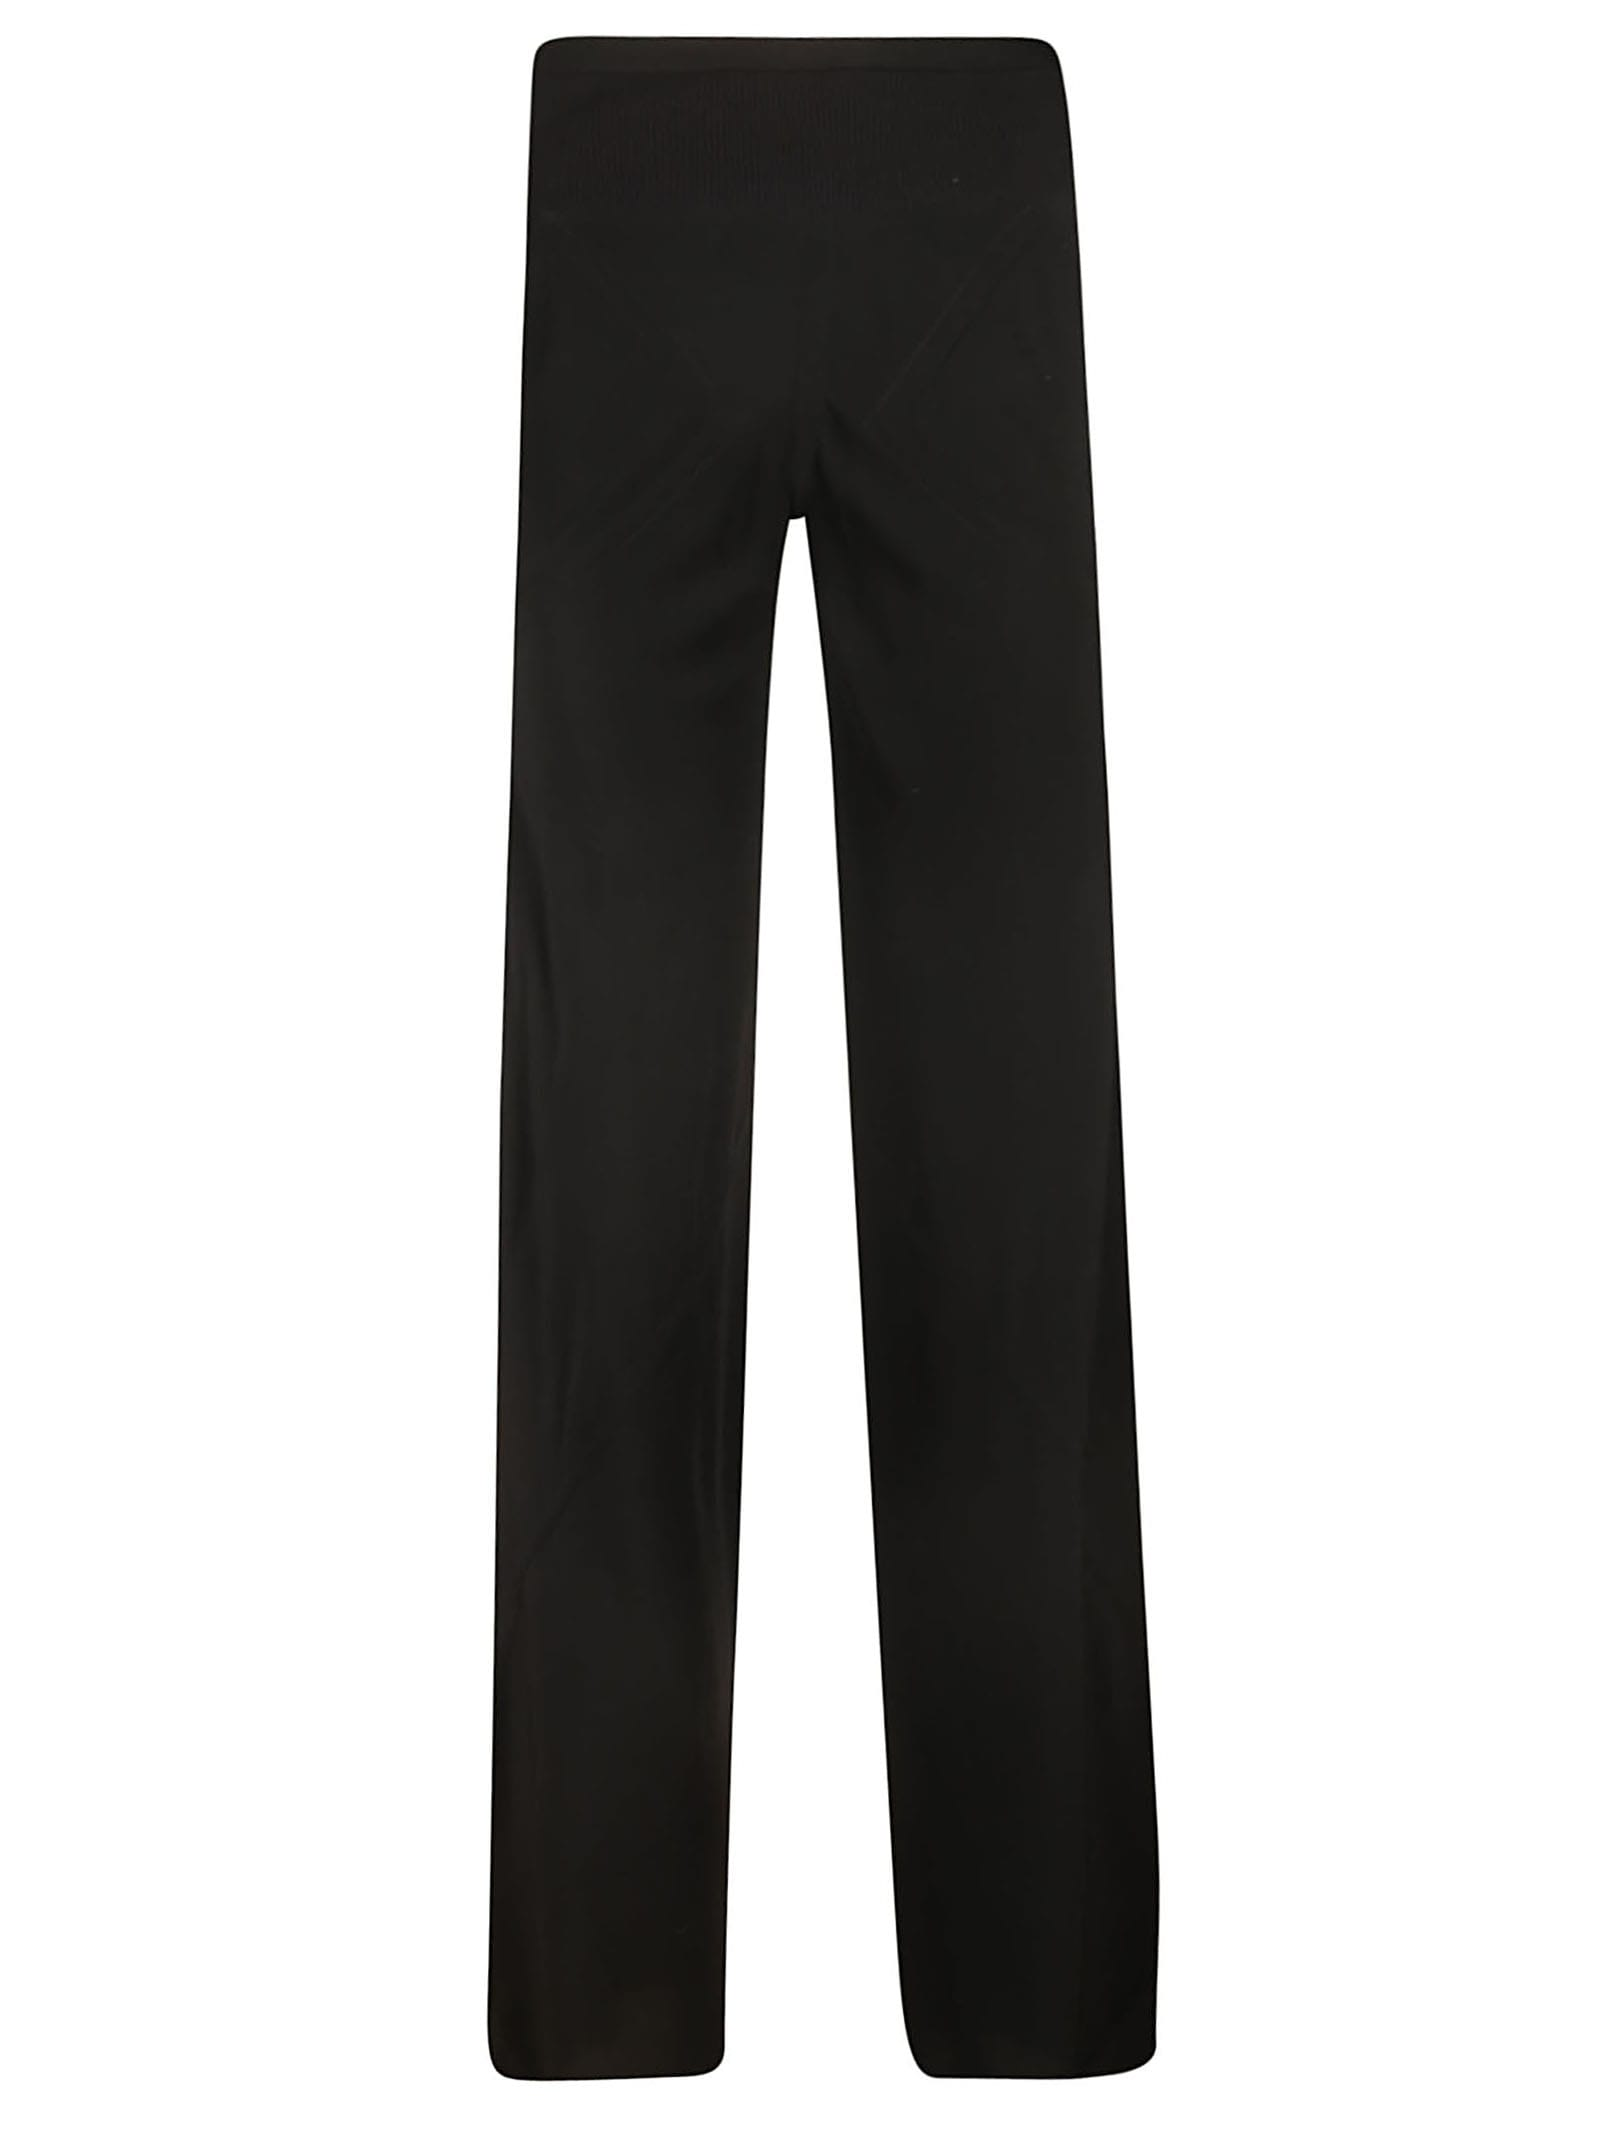 Rick Owens Loose Fit Trousers